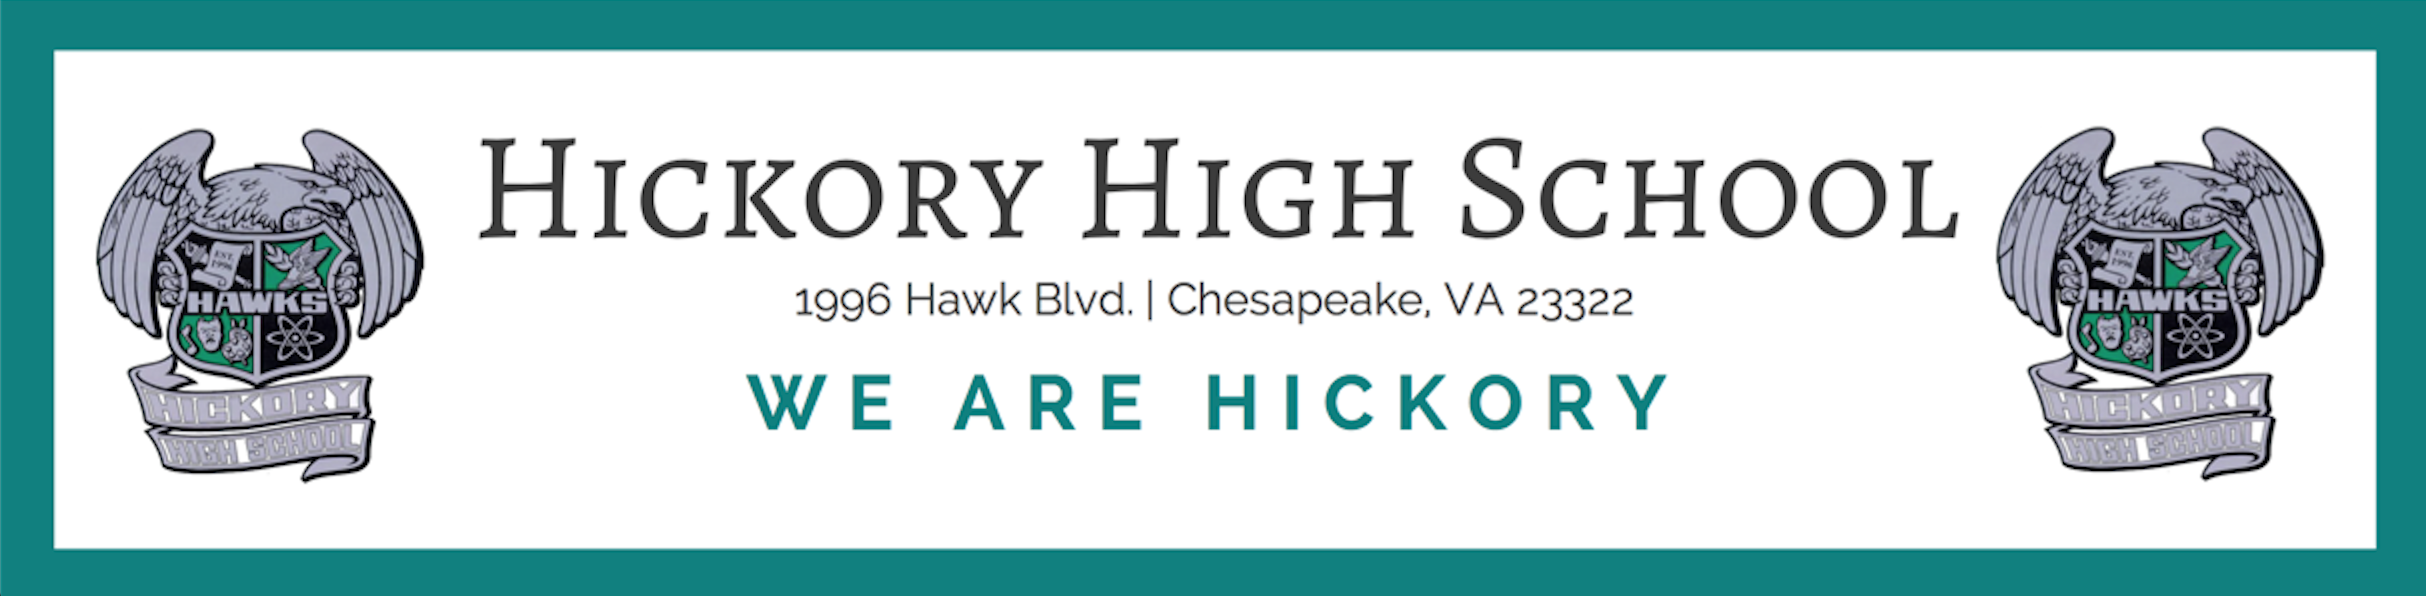 Hickory High School